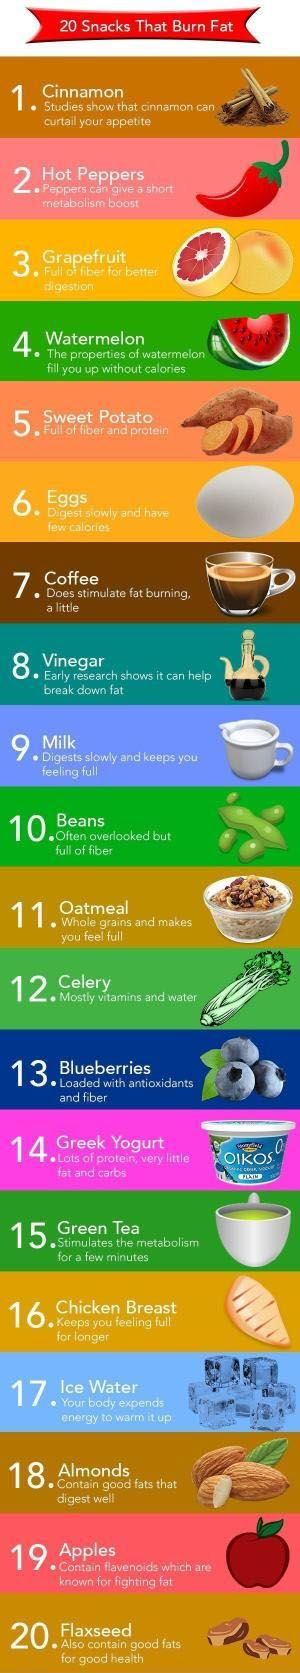 Foods That Get Rid of Belly Fat | Ways To Get Rid of Belly Fat